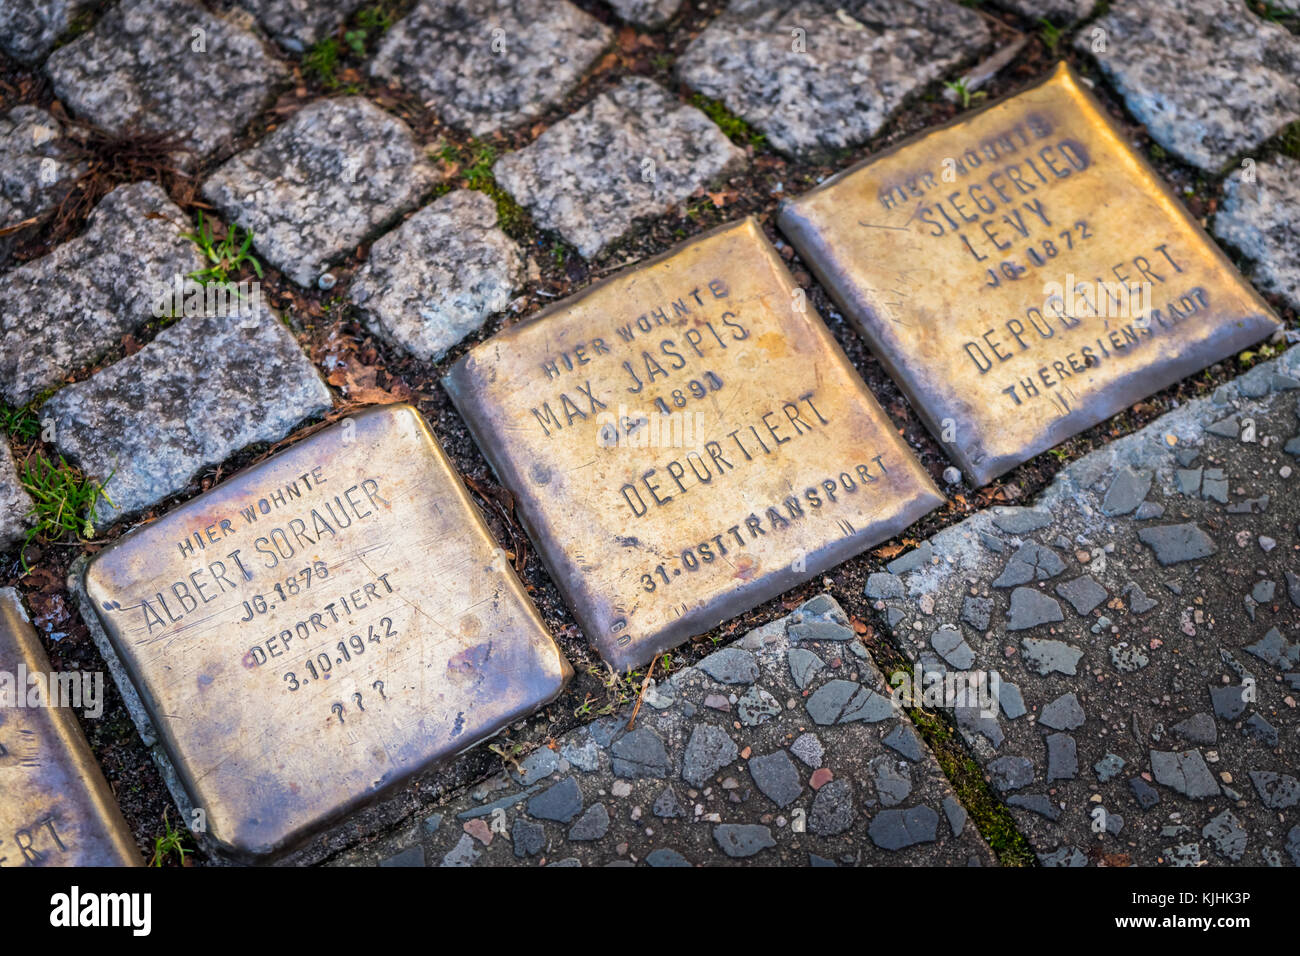 Stolpersteine (memorial stones) in a street in Berlin to commemorate the victims of the Nazi extermination camps - Stock Image